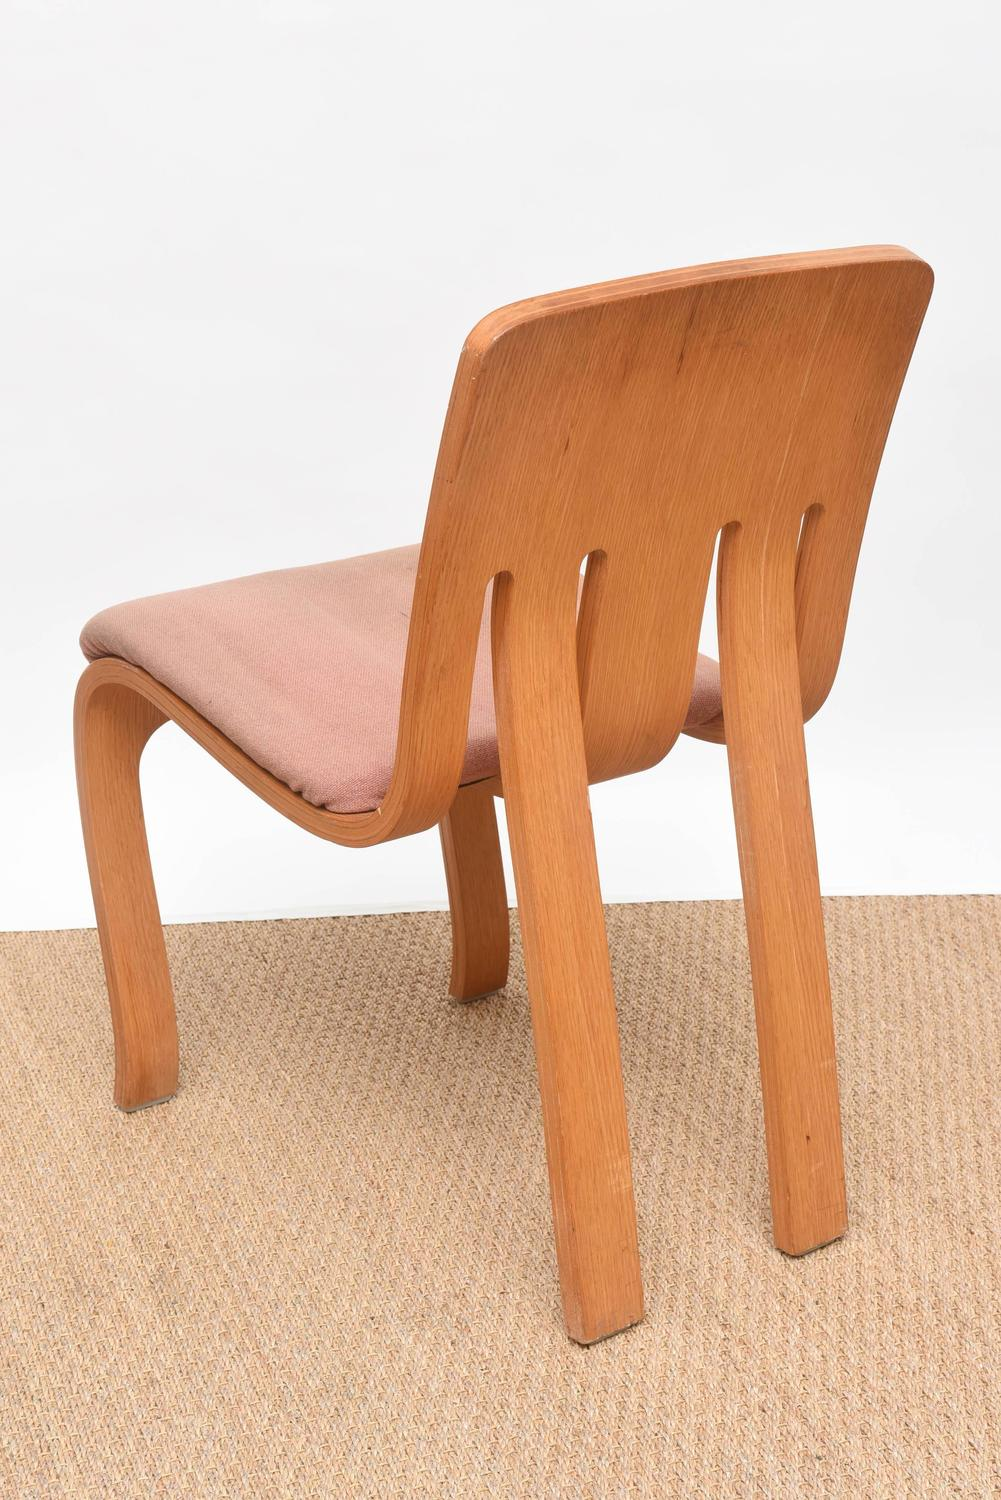 Rare set of thonet bent plywood chairs for sale at 1stdibs